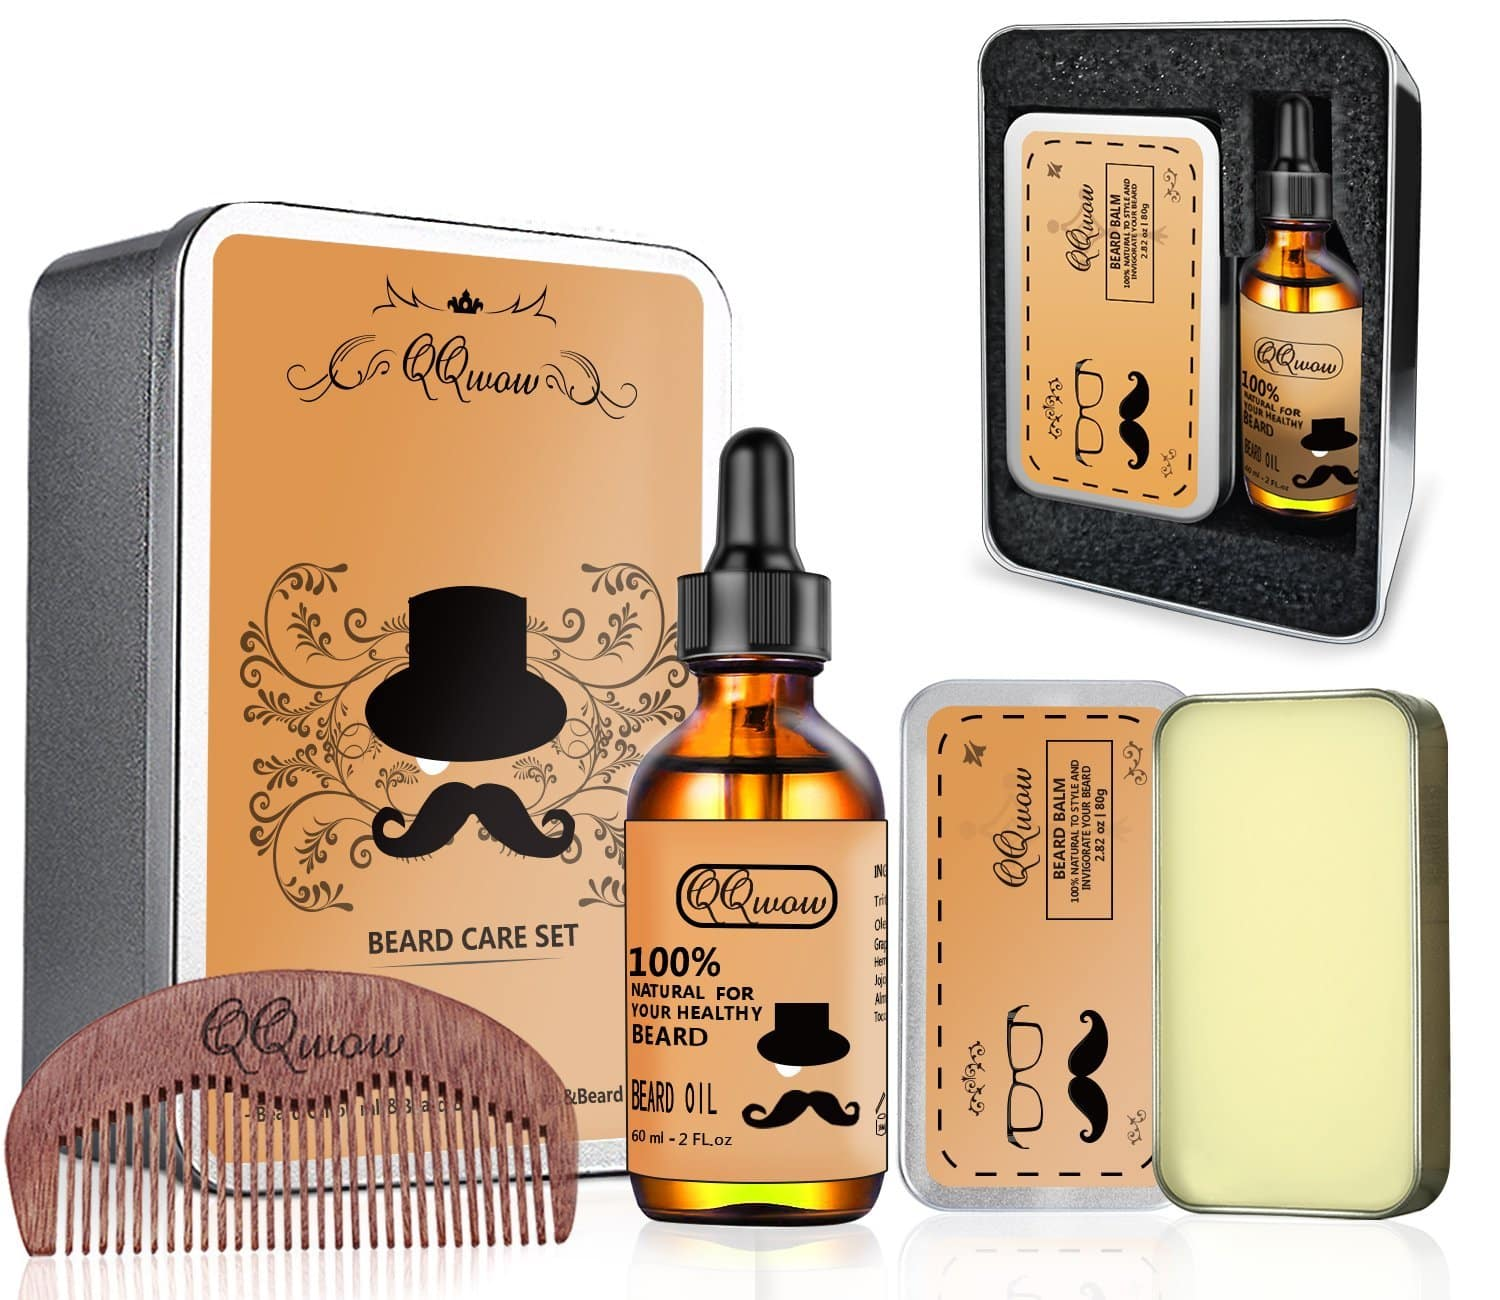 Beard Kit for Mens Grooming and Beard Care - $10.04 @ Amazon